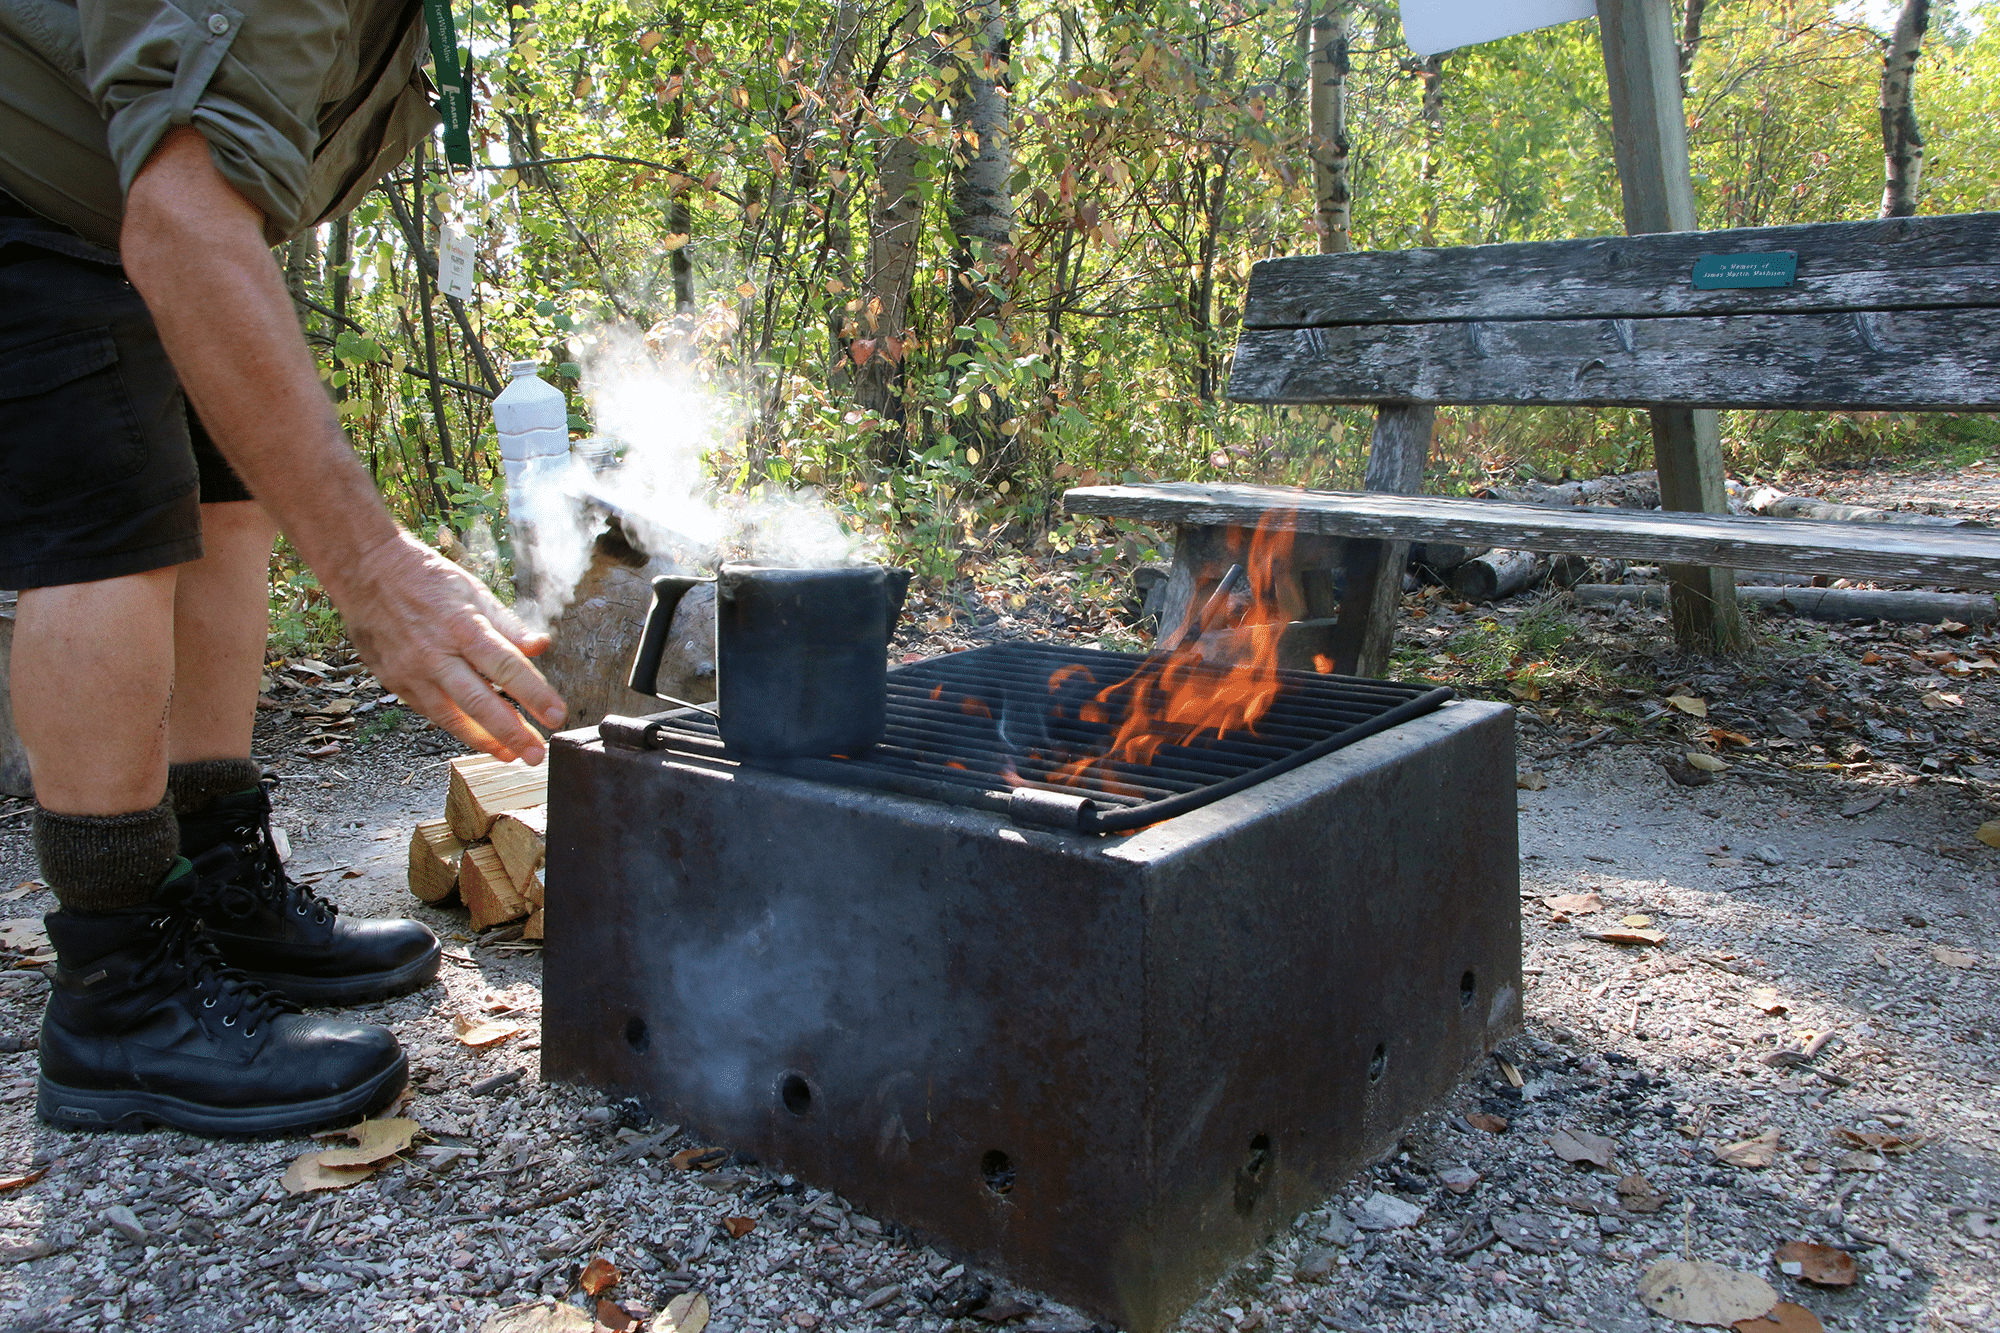 Keith opens his kettle on the firepit, releasing white steam in the sunlight.